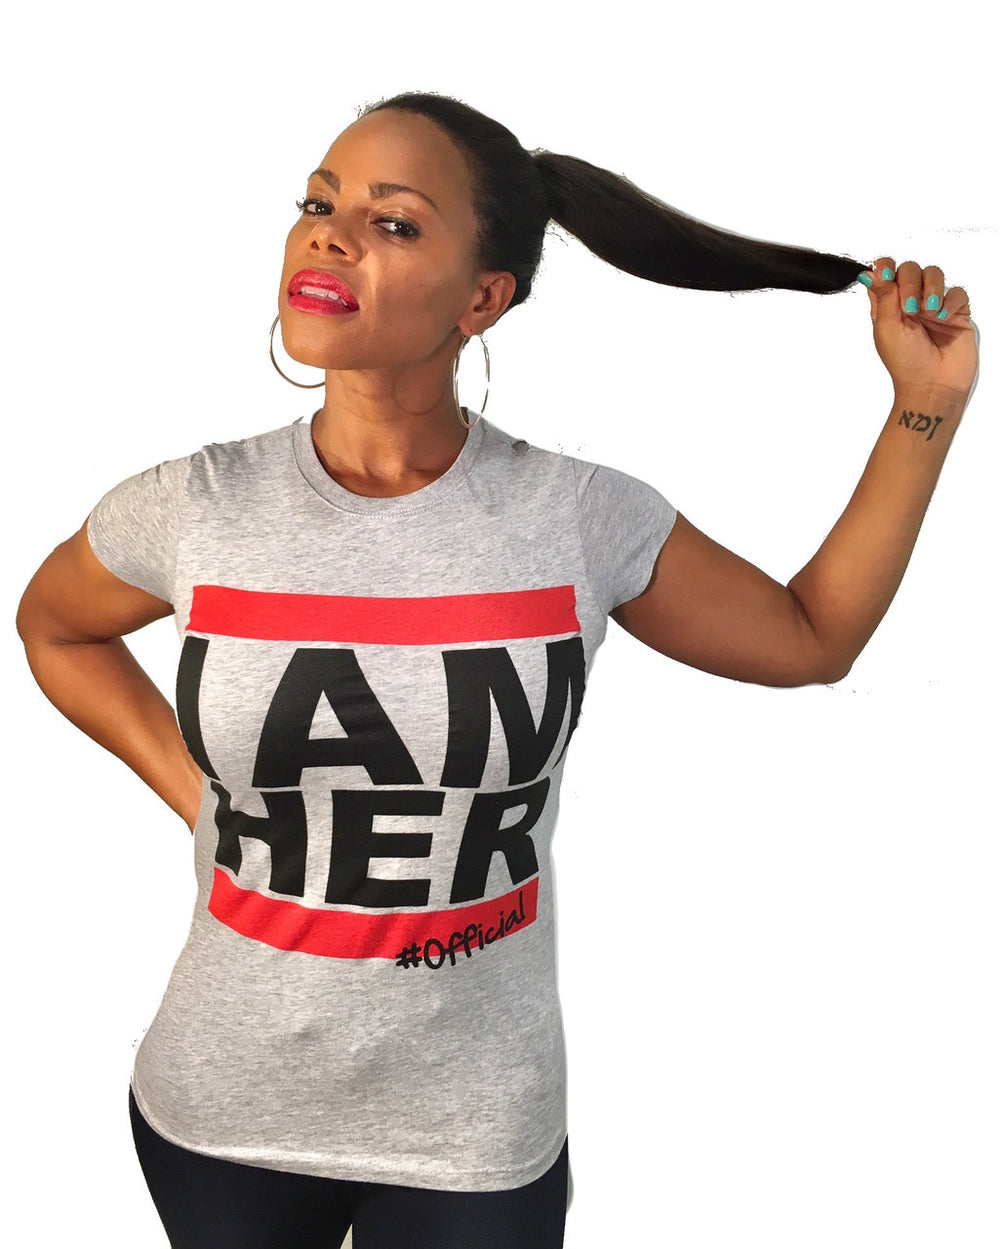 I AM HER - Tees for Women - Gray - I AM HER Apparel, LLC